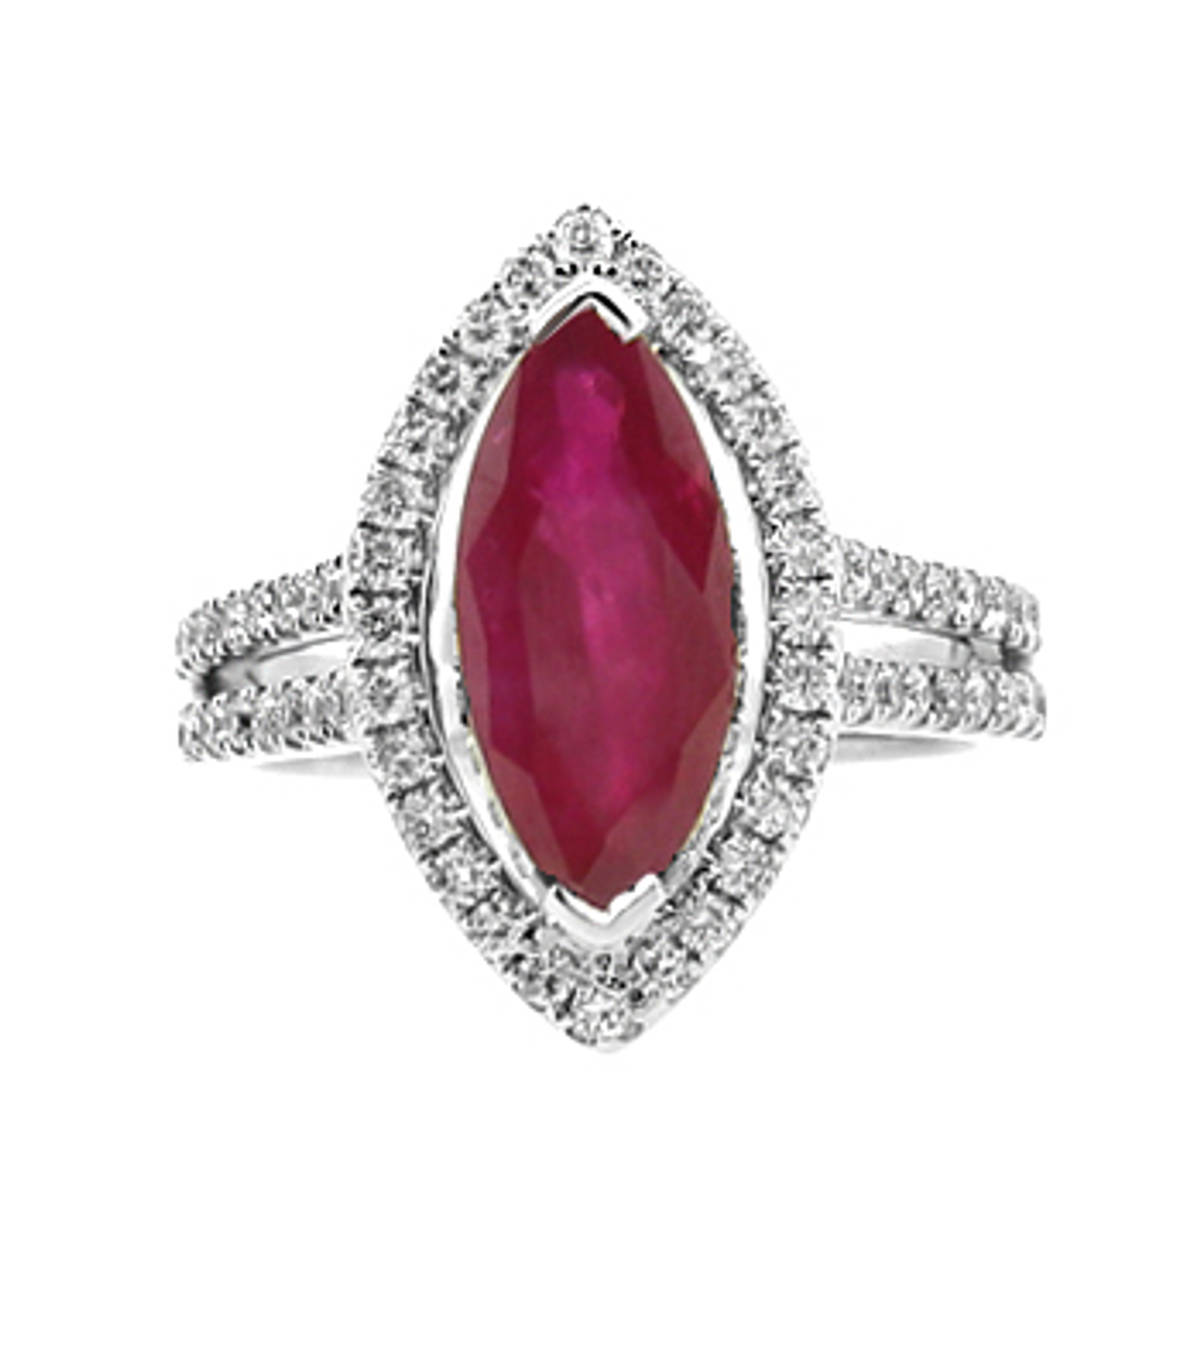 Marquise ruby and diamond dress ring